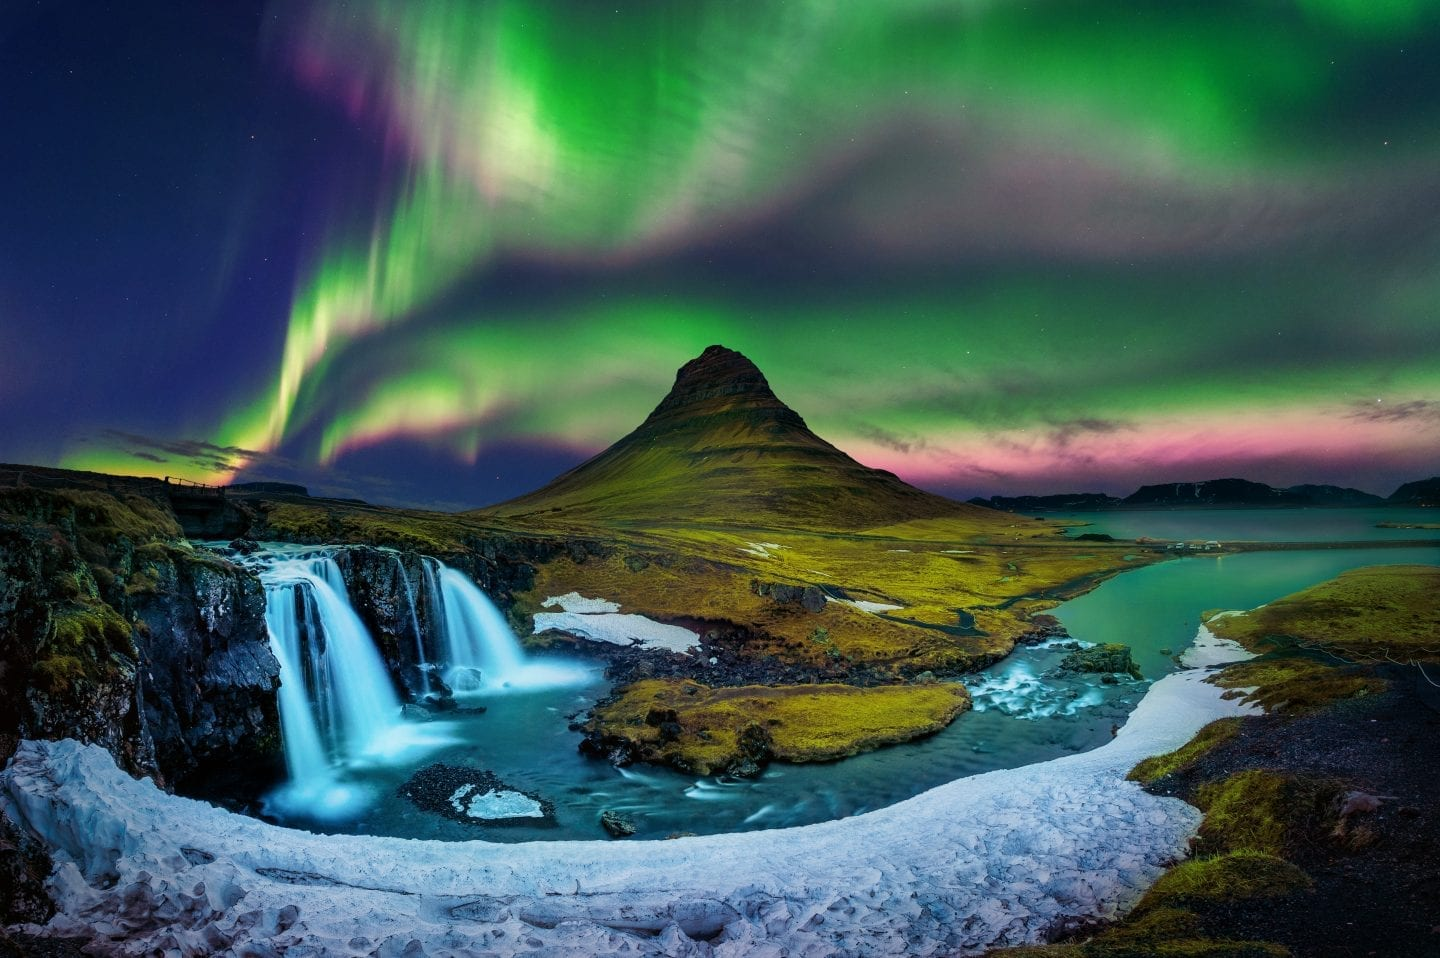 winter bucket list - visit iceland